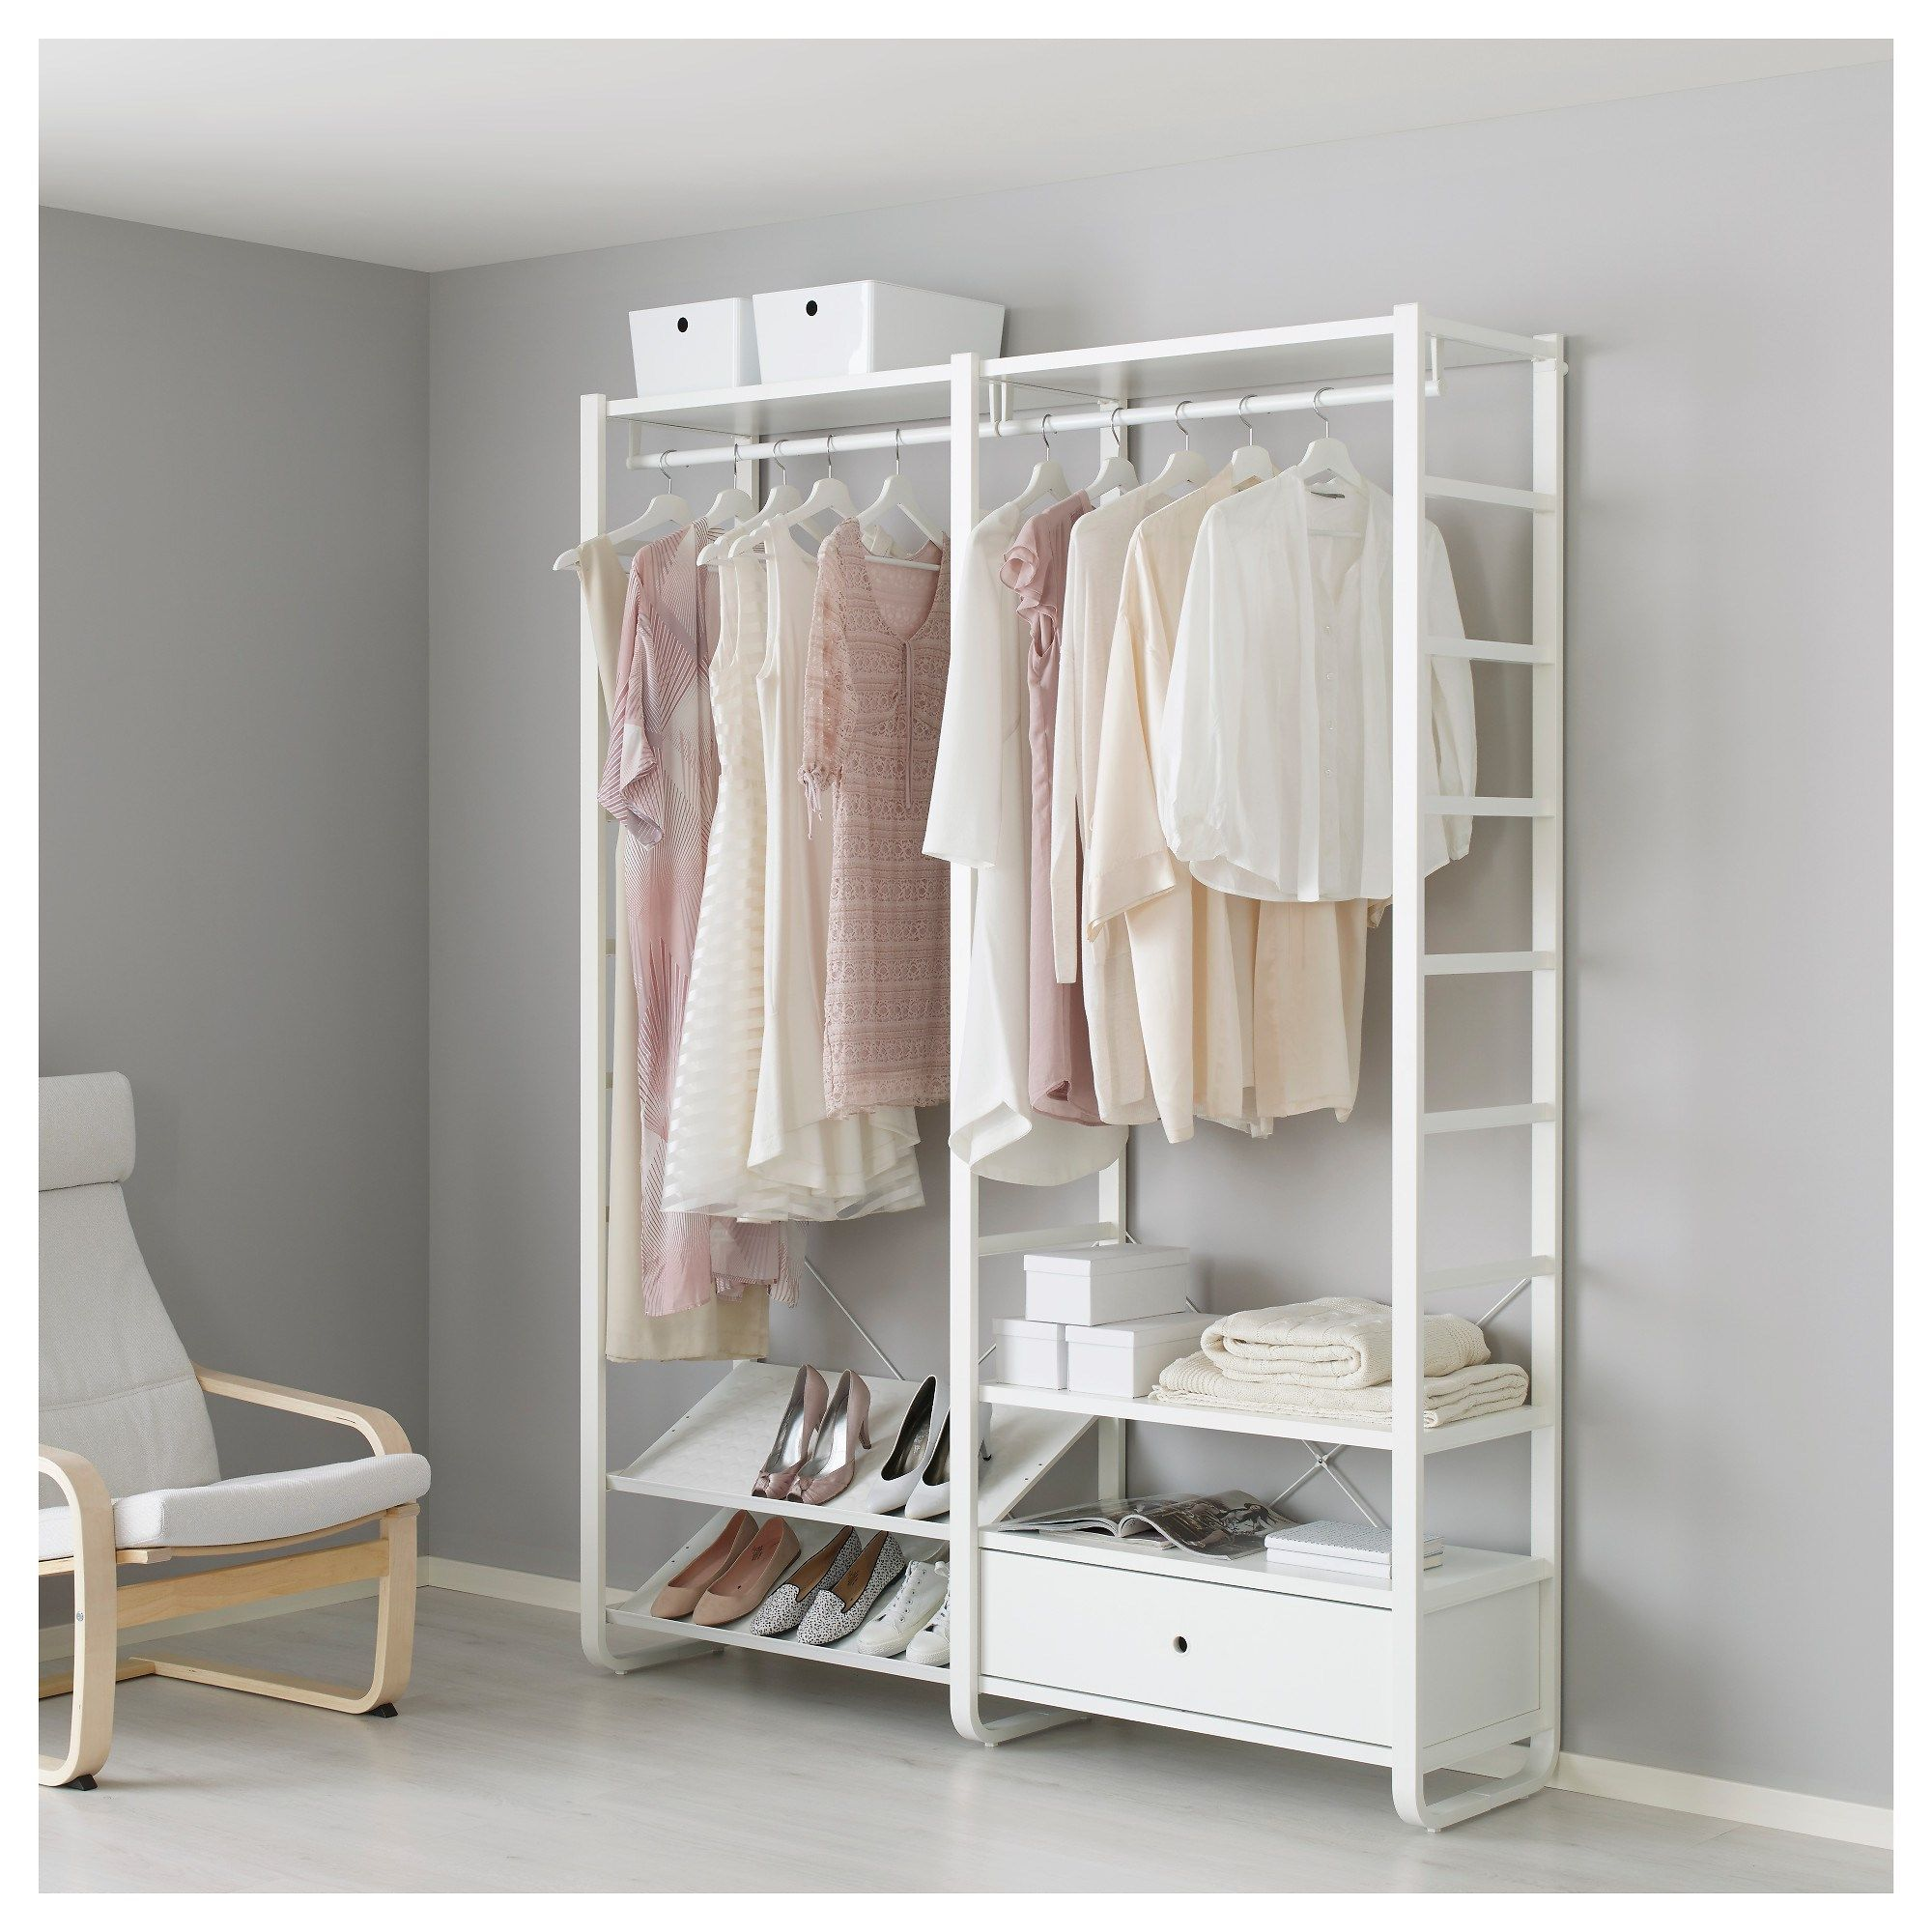 Pleasing ikea portable closet storage roselawnlutheran for Ikea closet storage